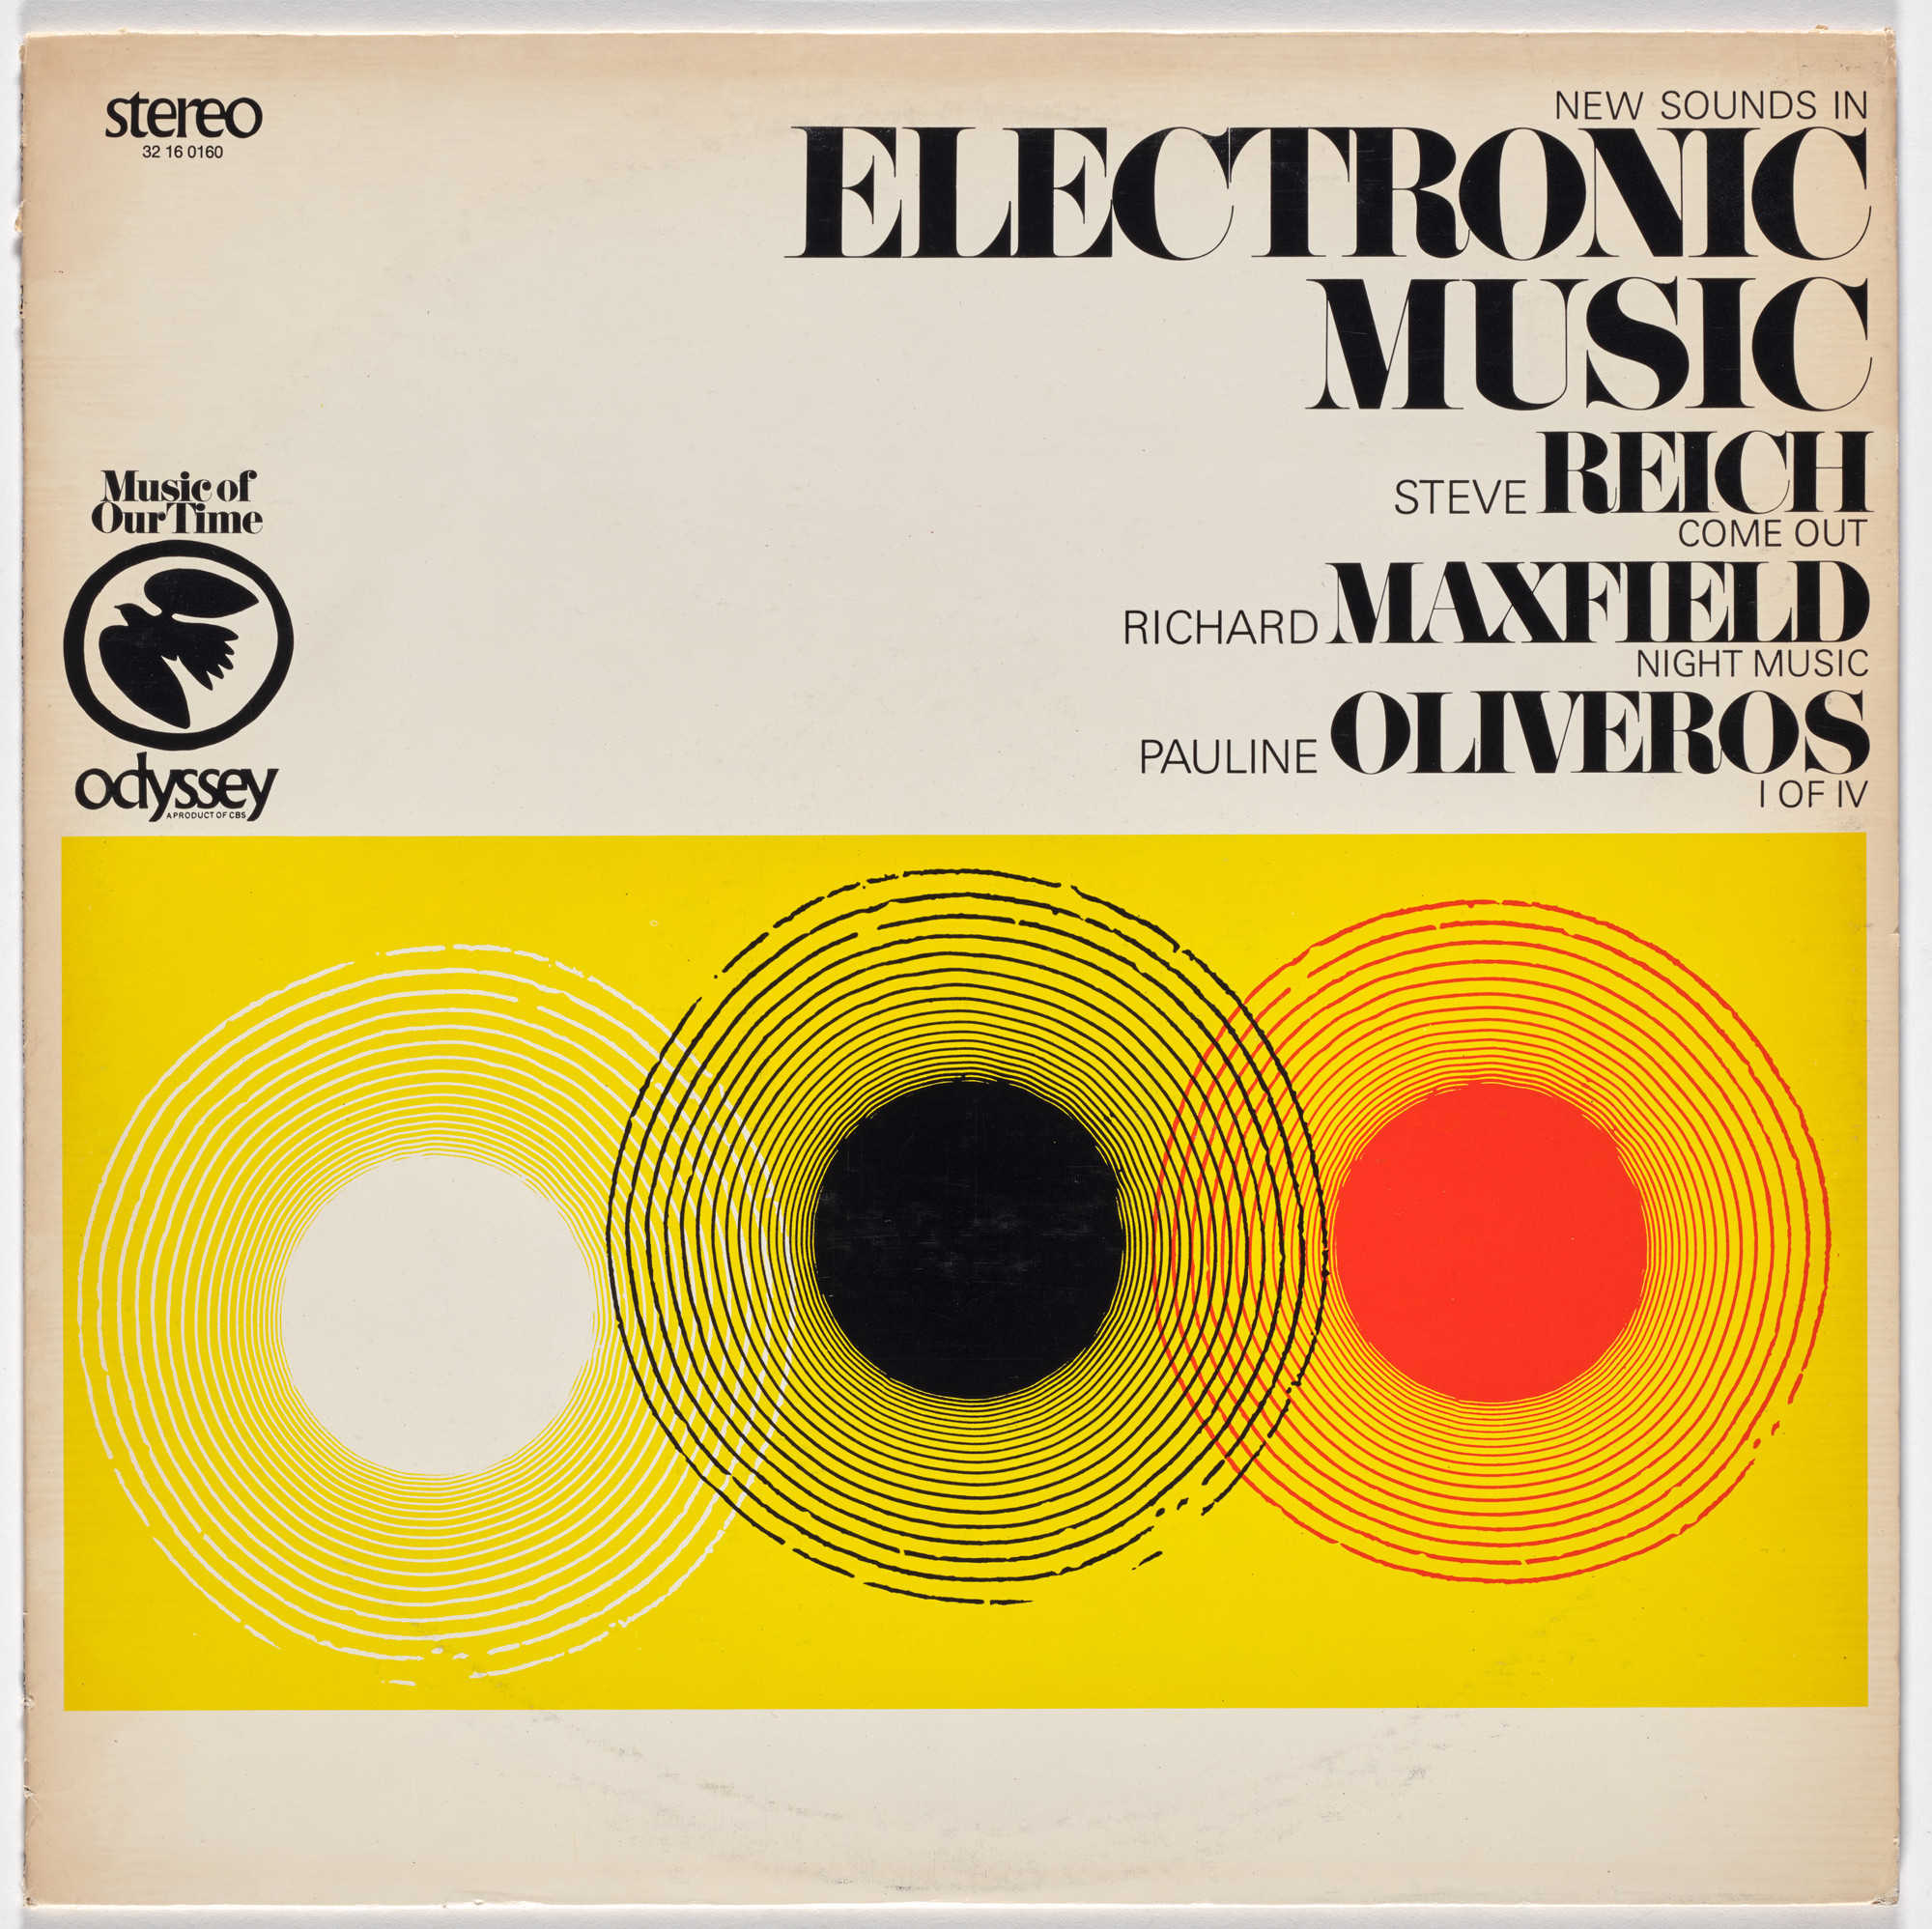 Richard Maxfield, Pauline Oliveros, Steve Reich, Various Artists. New Sounds in Electronic Music. 1967